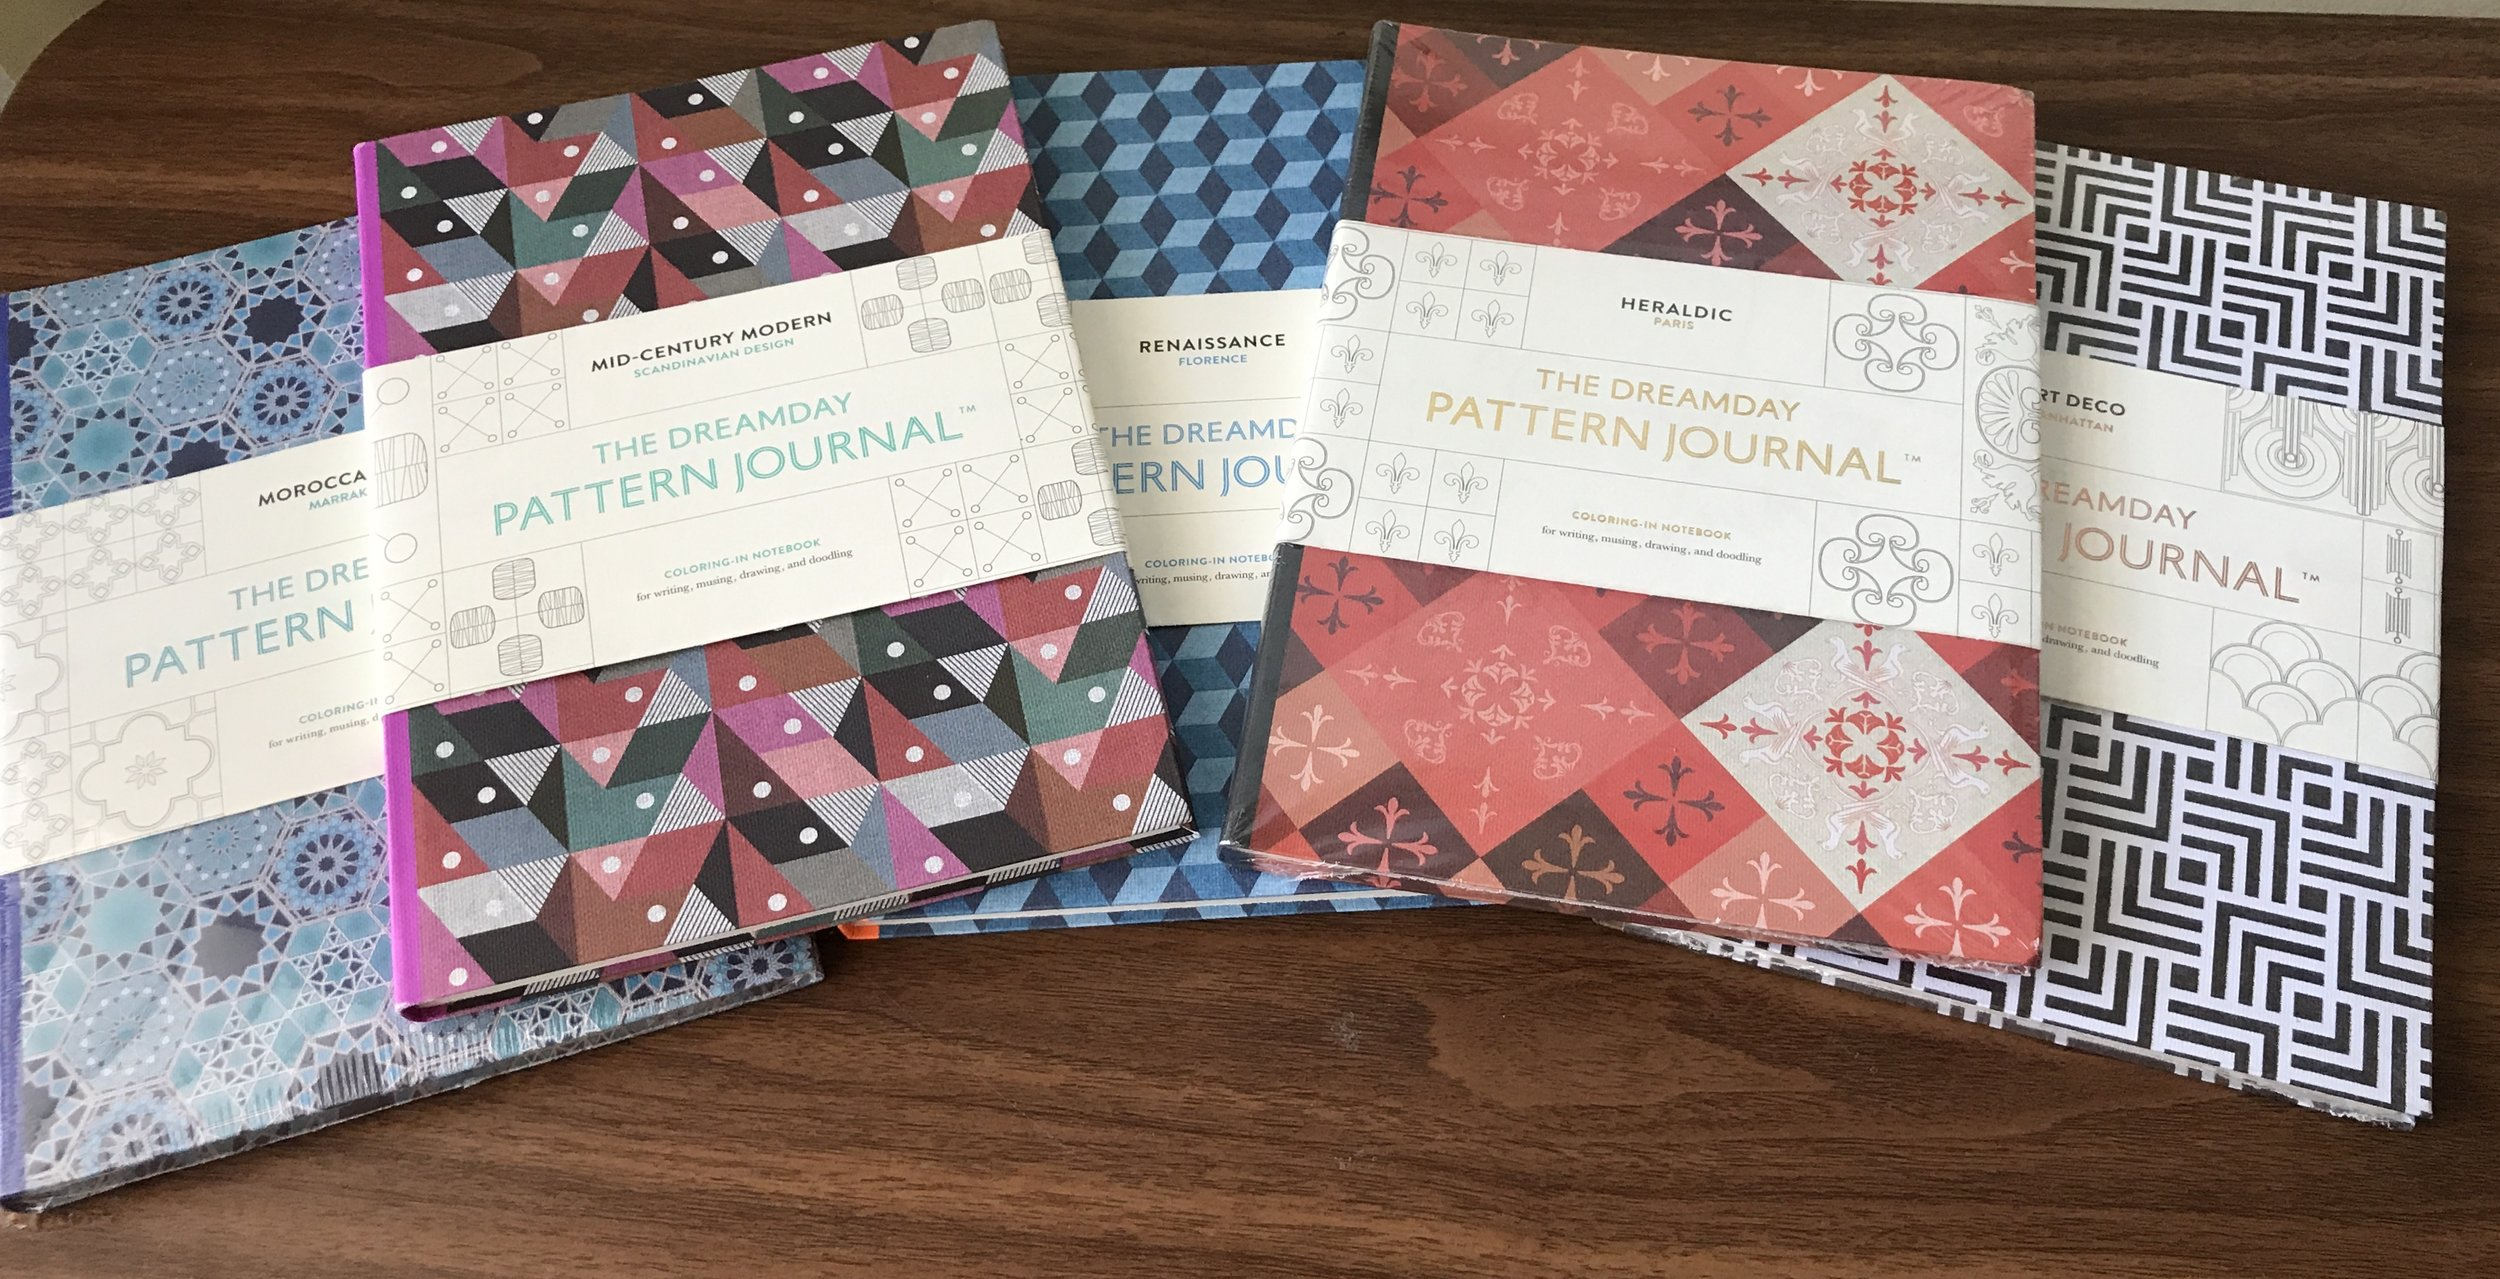 Laurence-King-Giveaway-Dreamday-Pattern-Journal